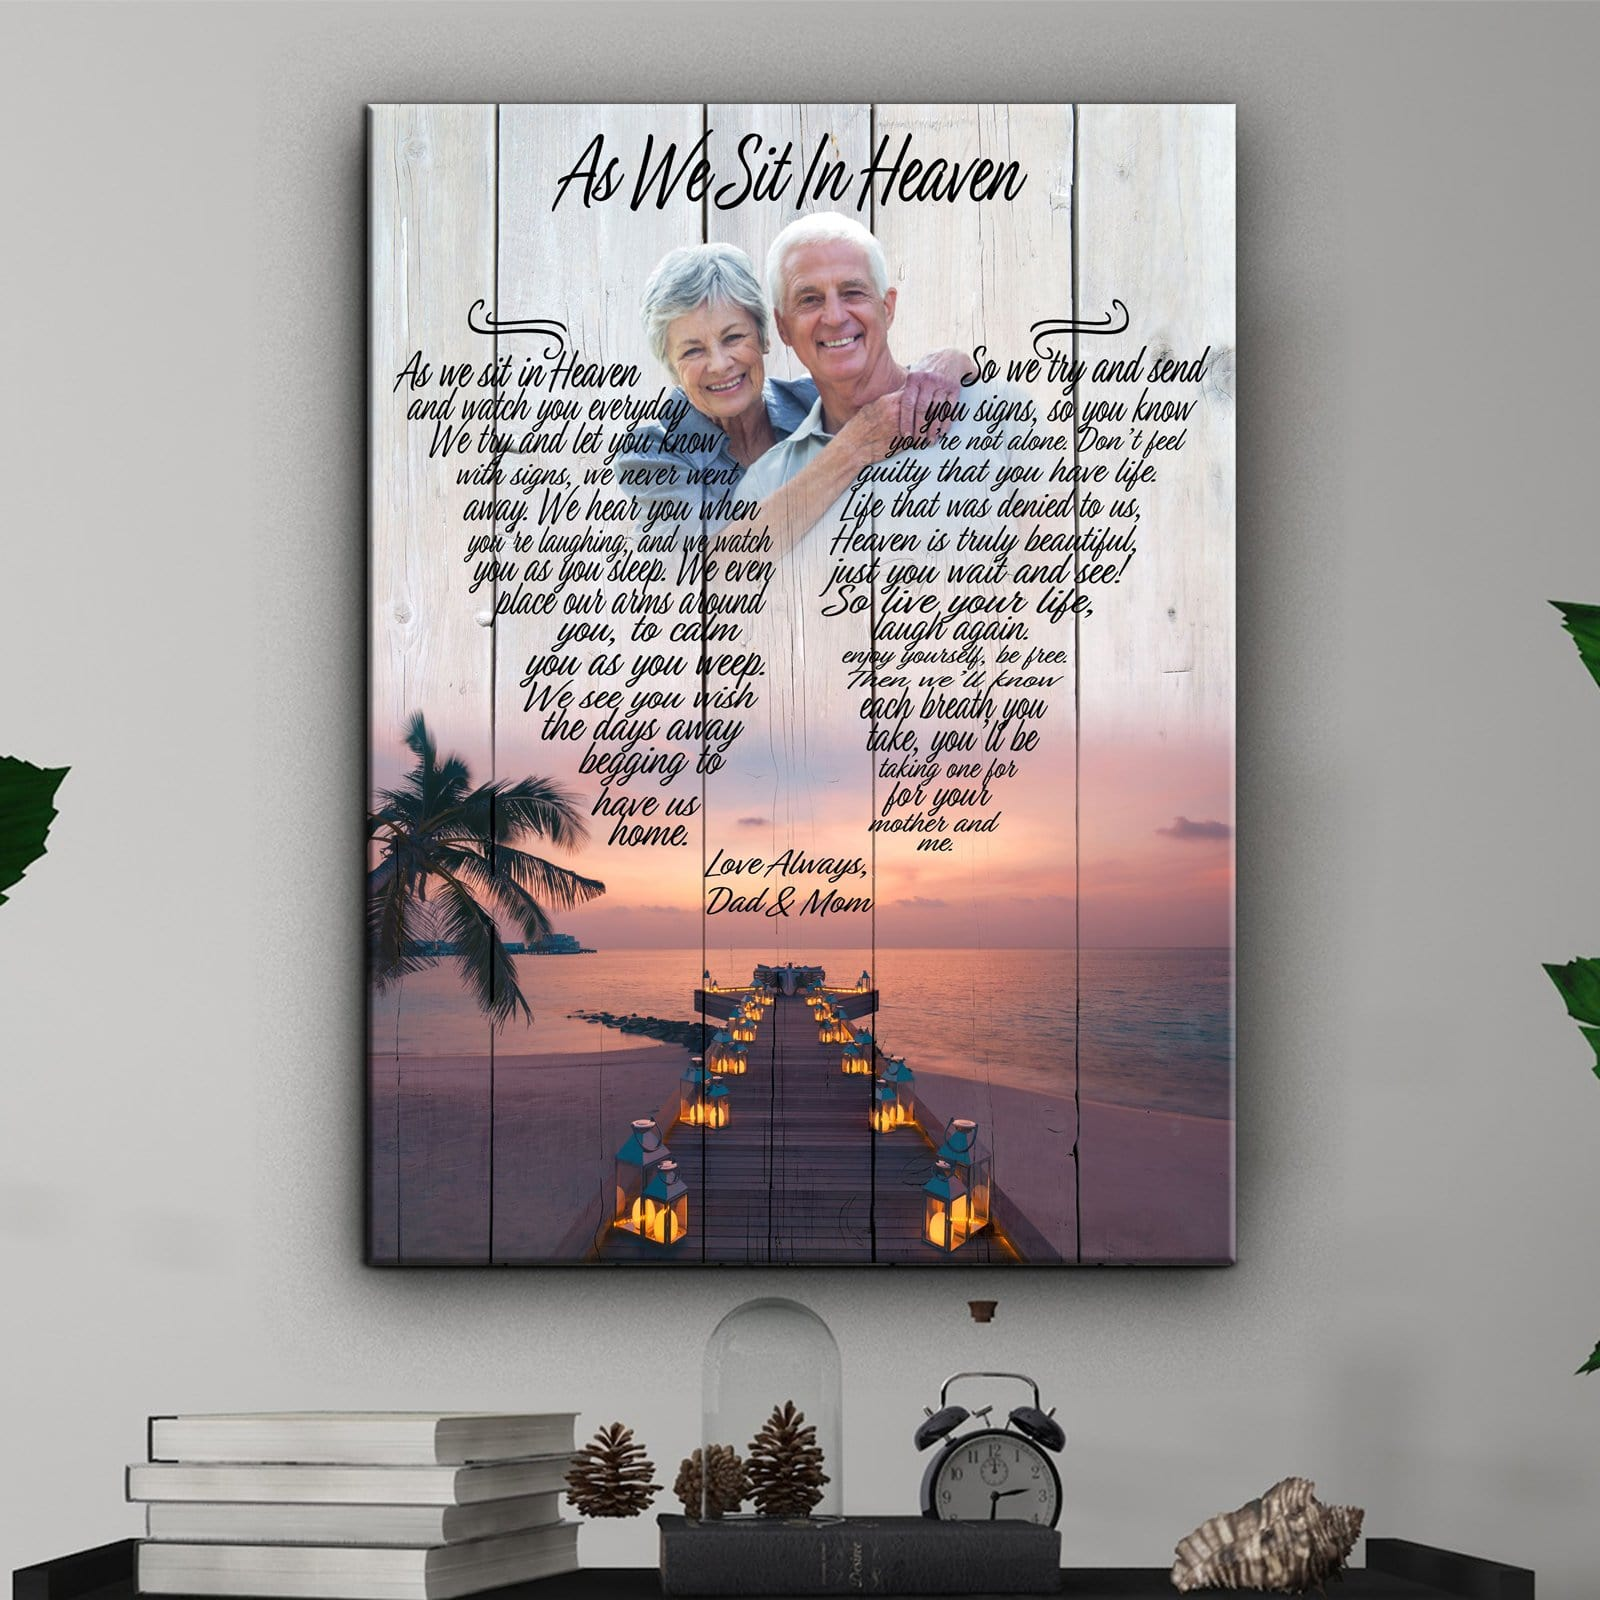 As We Sit In Heaven - Lanterns By The Sea - Personalized Canvas